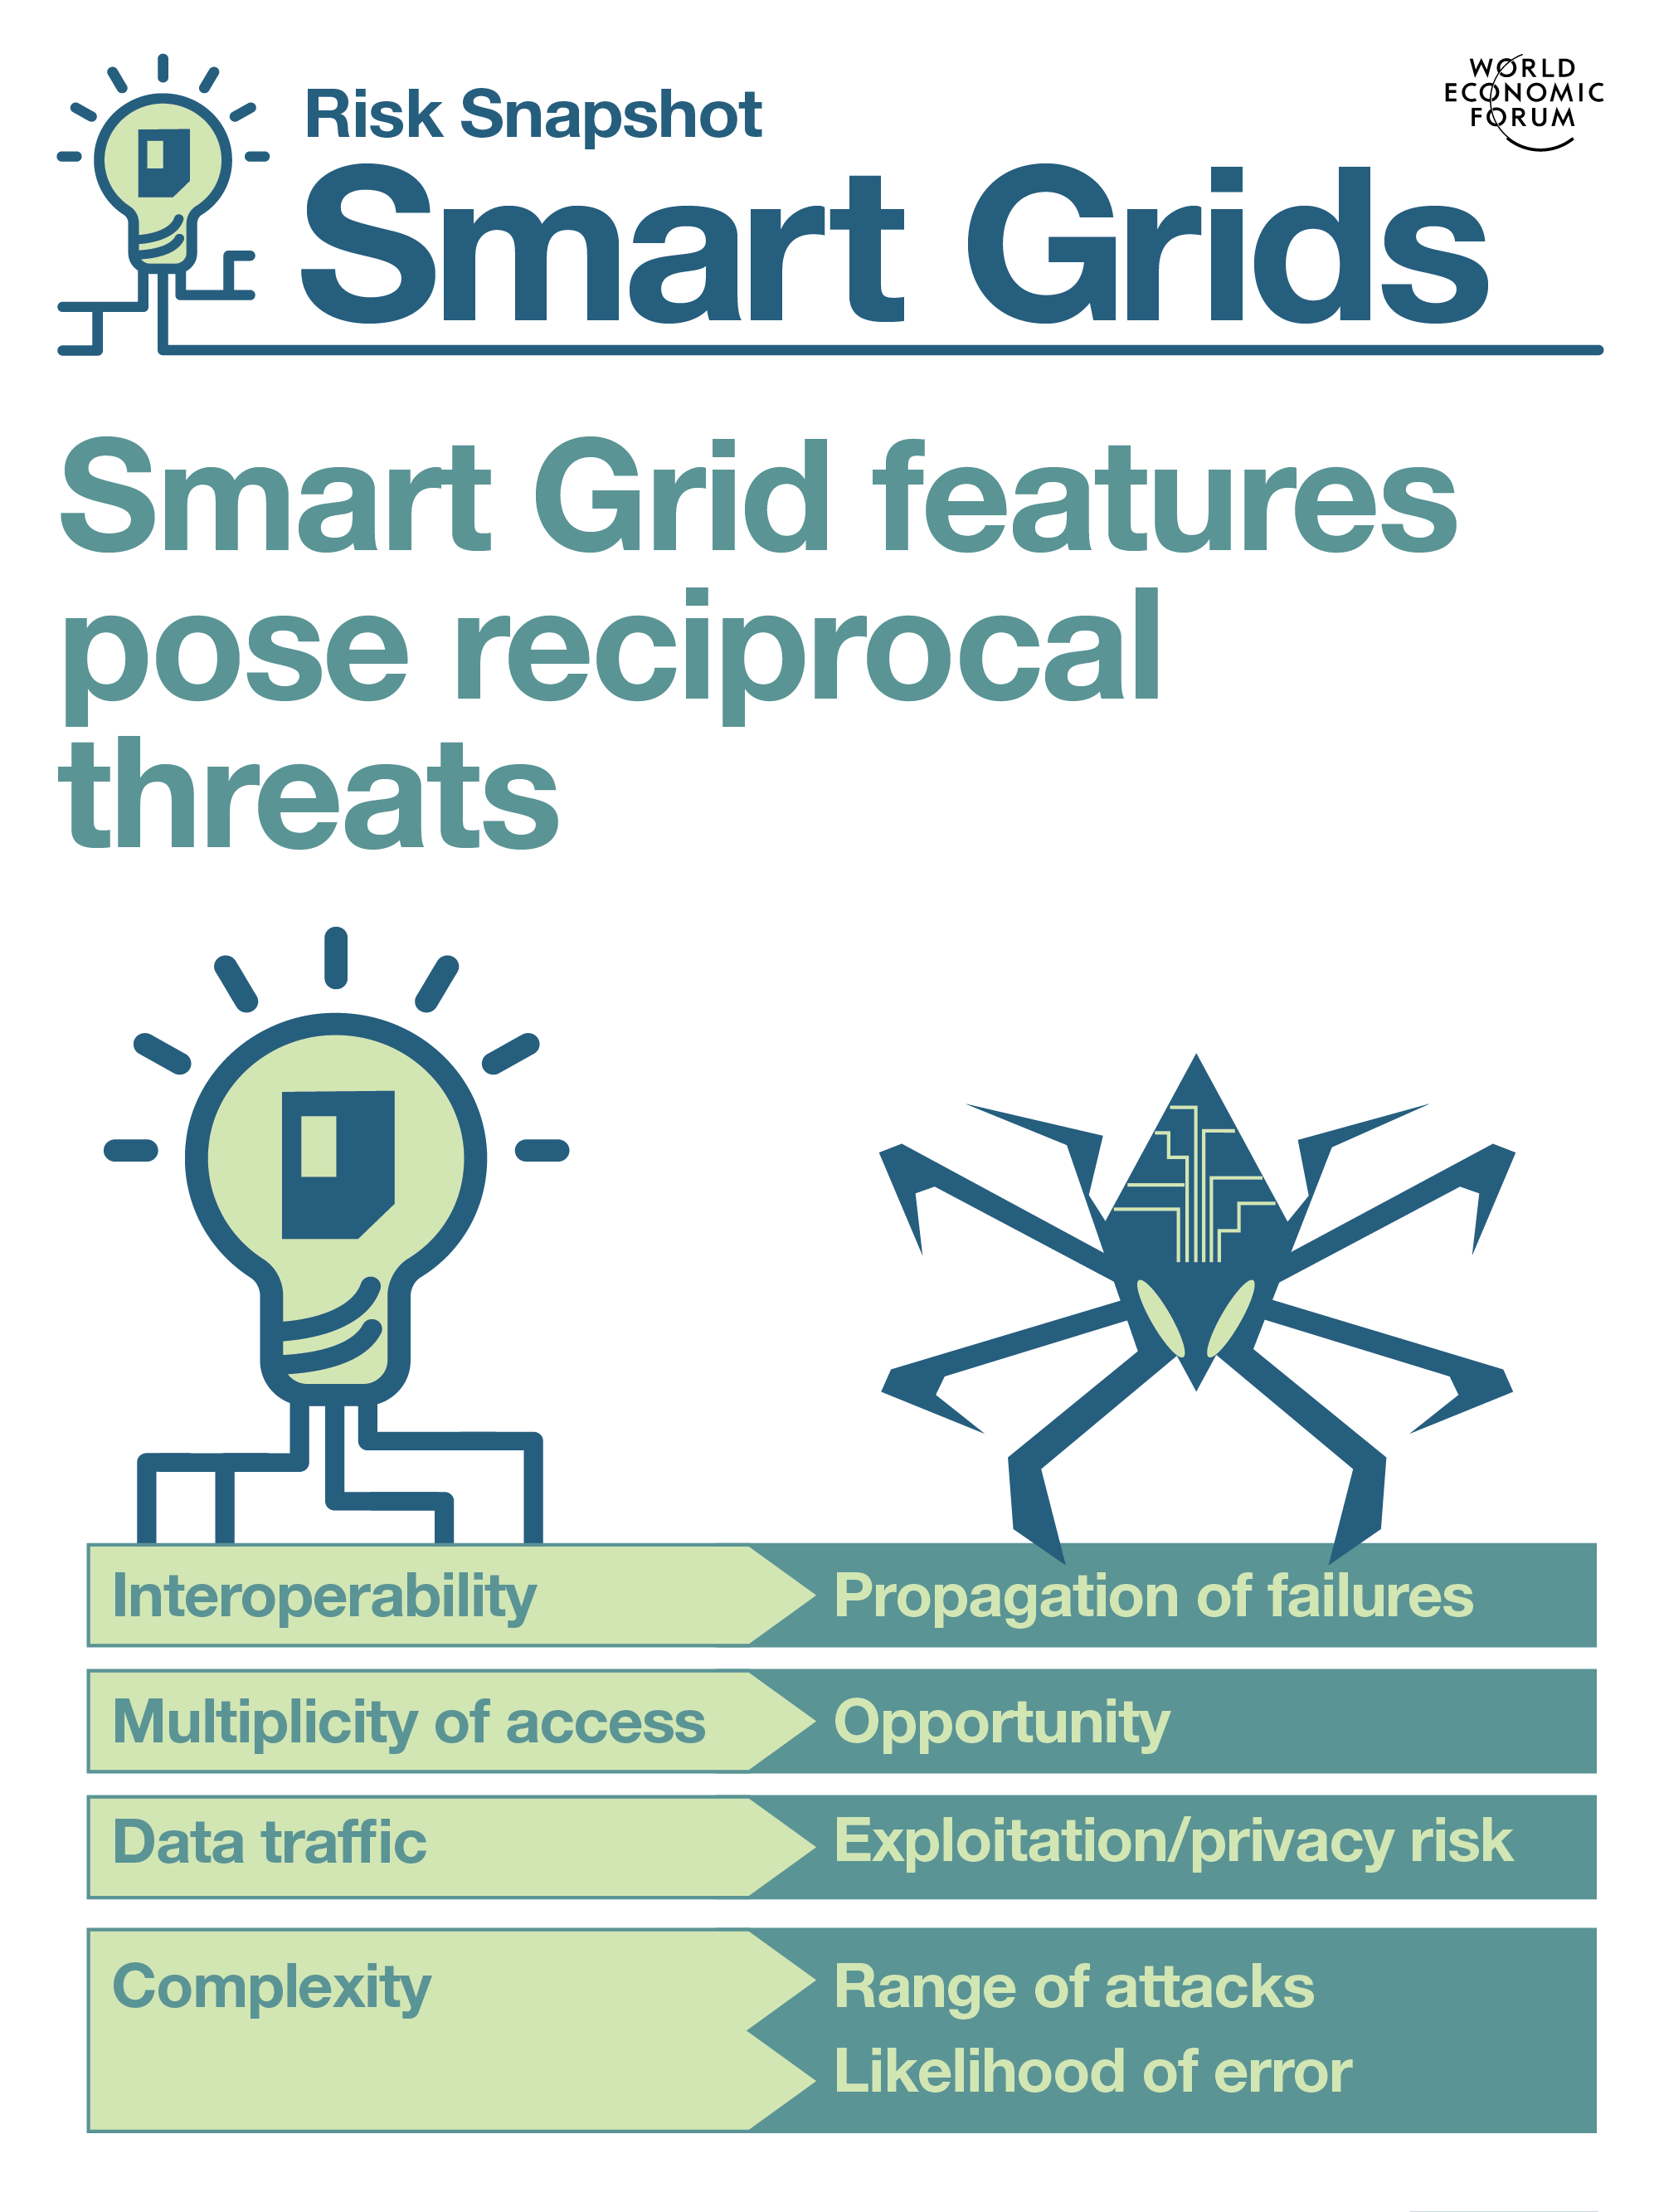 The nature of smart grids leverages the severity of the cyberthreats to them